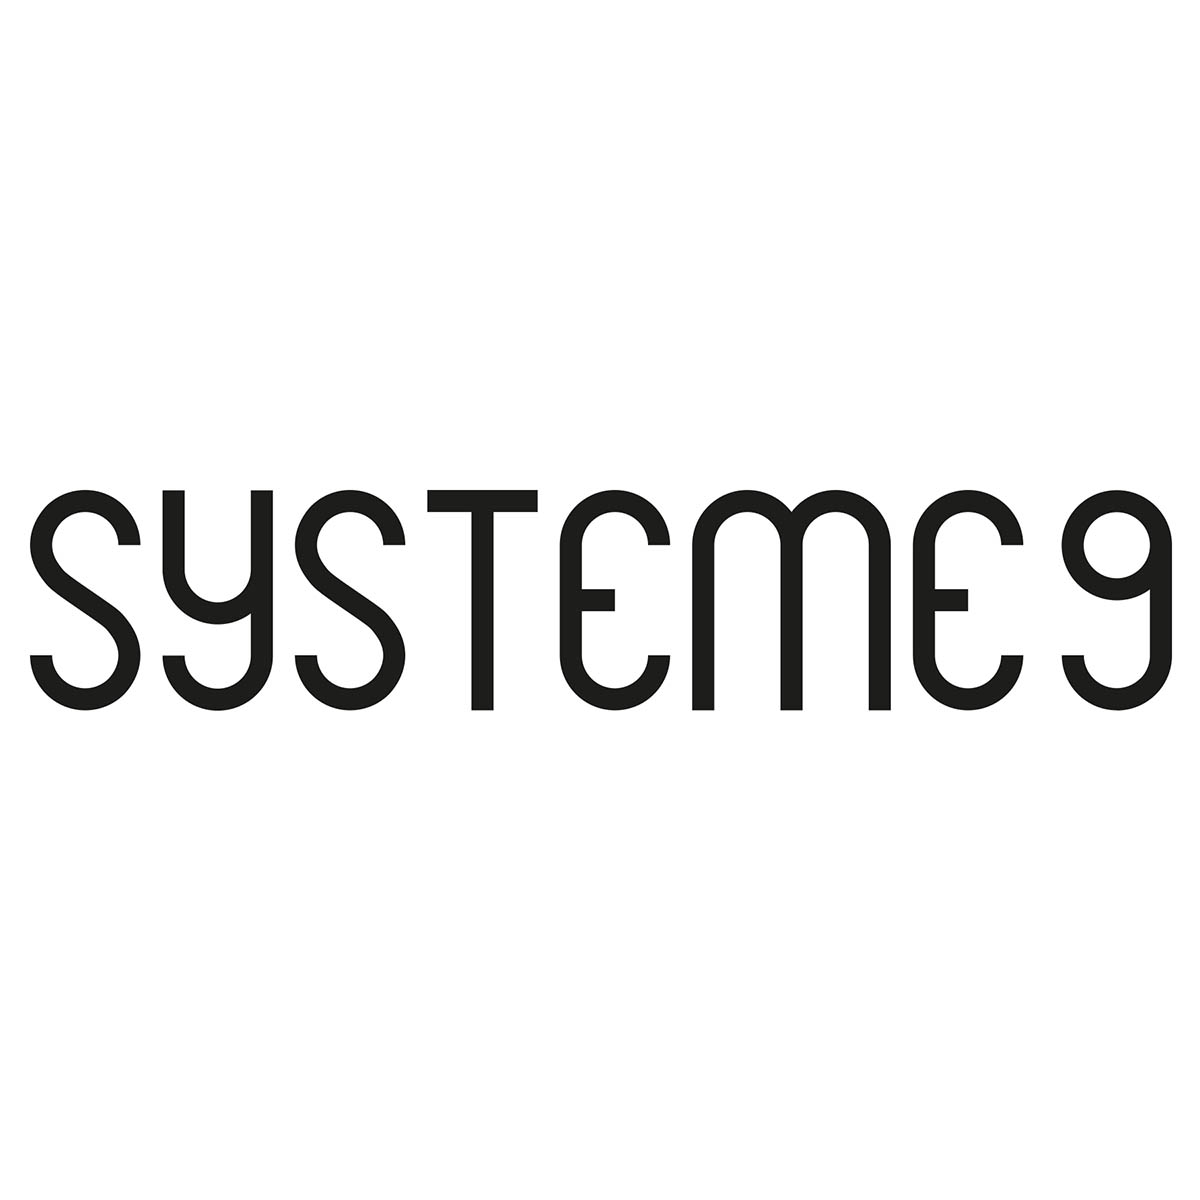 Systeme 9